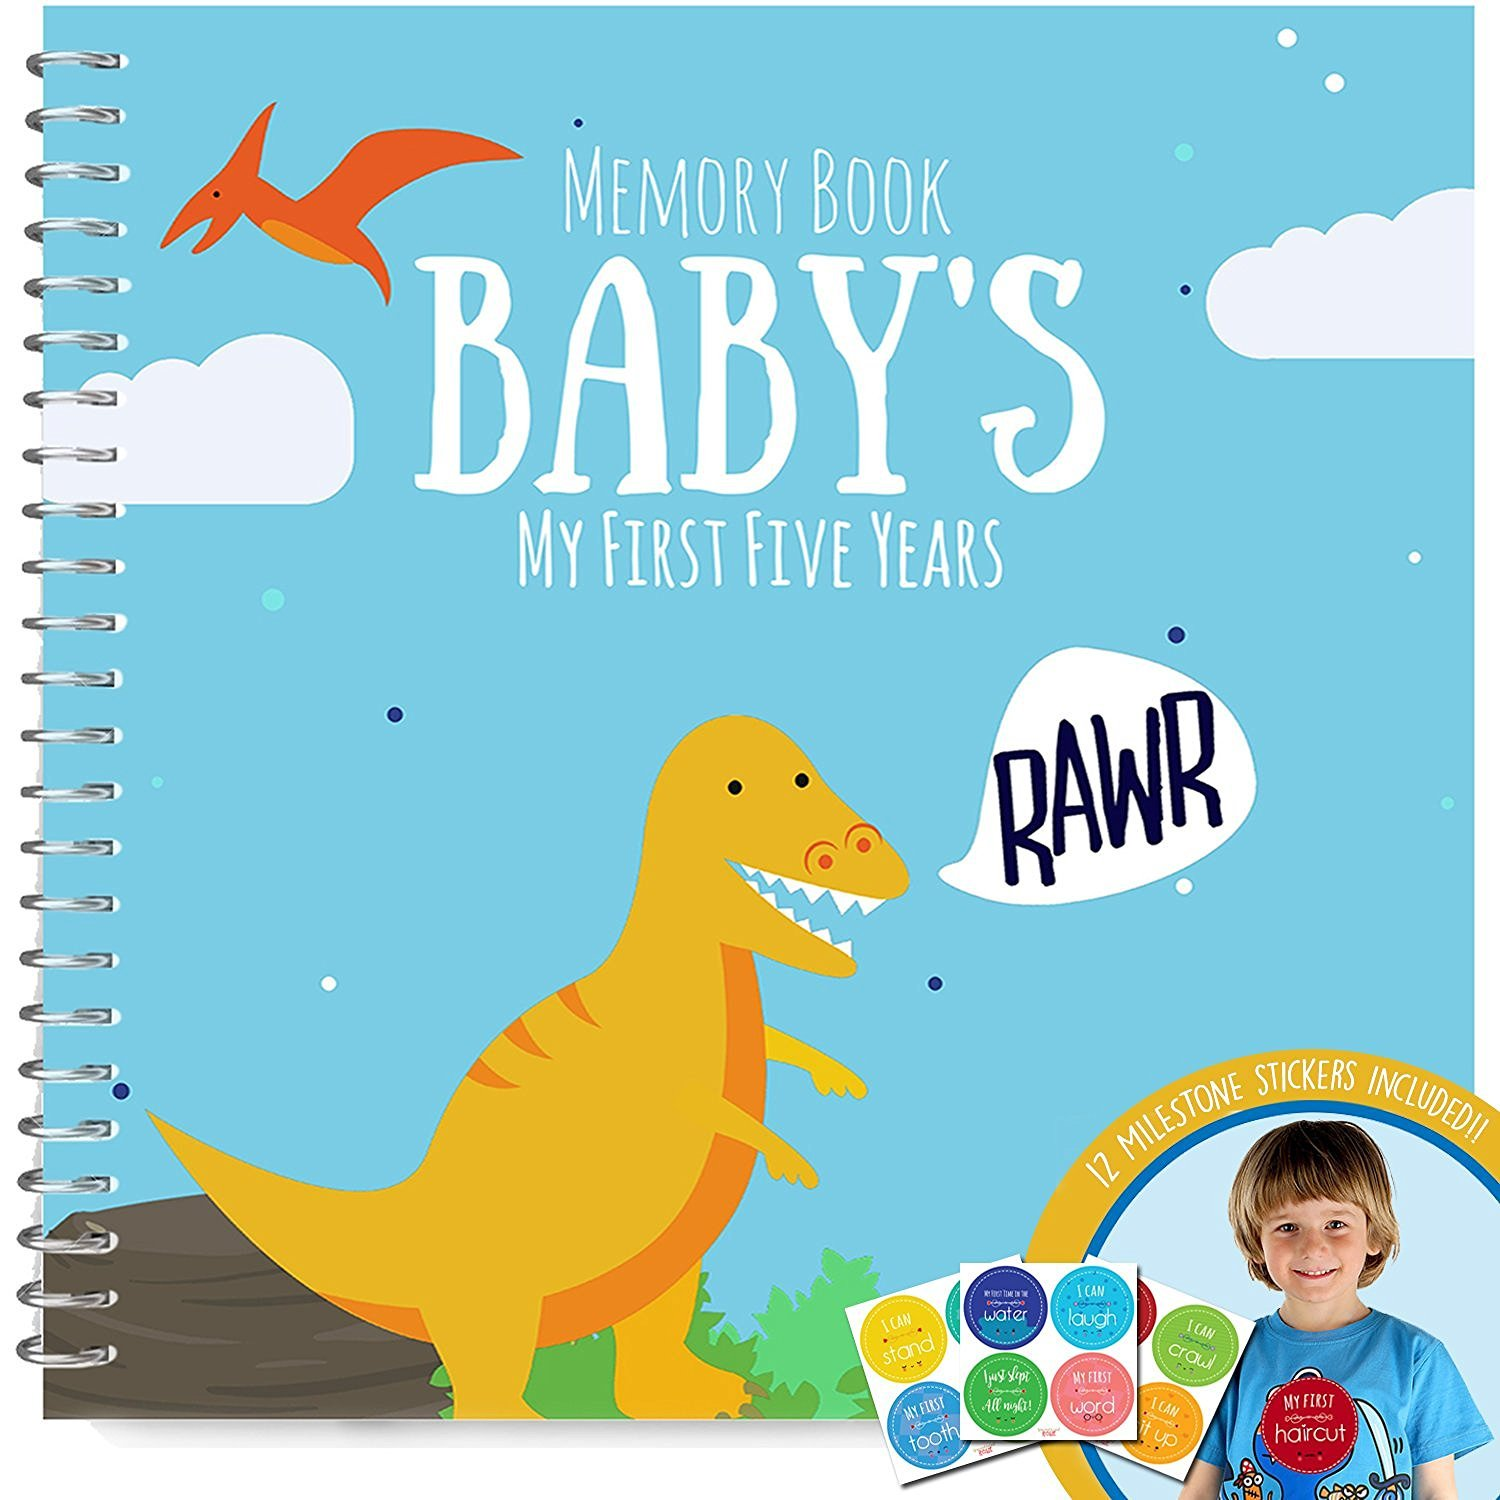 Dinosaur T-rex Edition Baby's First Five Years Memory Book With Stickers - Newborn Hard Cover Journal - Babies Personalized Keepsake Scrapbook - Baby 1st Year Milestone Photo Album Unconditional Rosie S5DINO